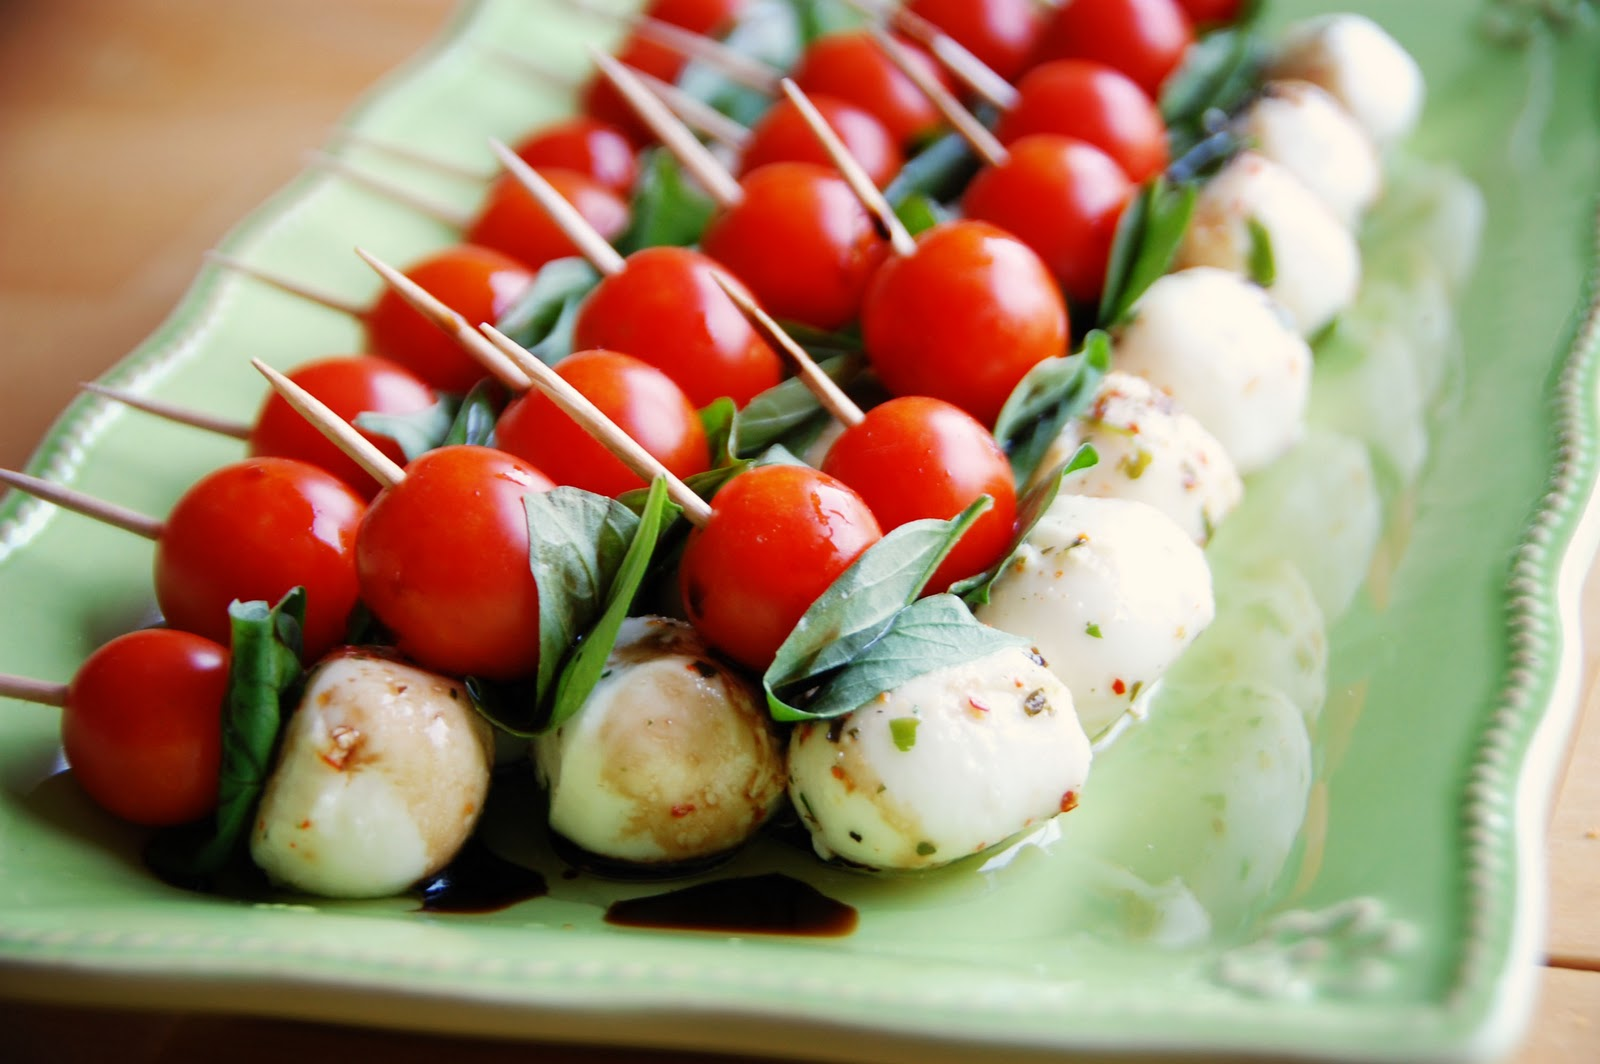 Caprese Salad Skewers Recipes Caprese Salad Skewers